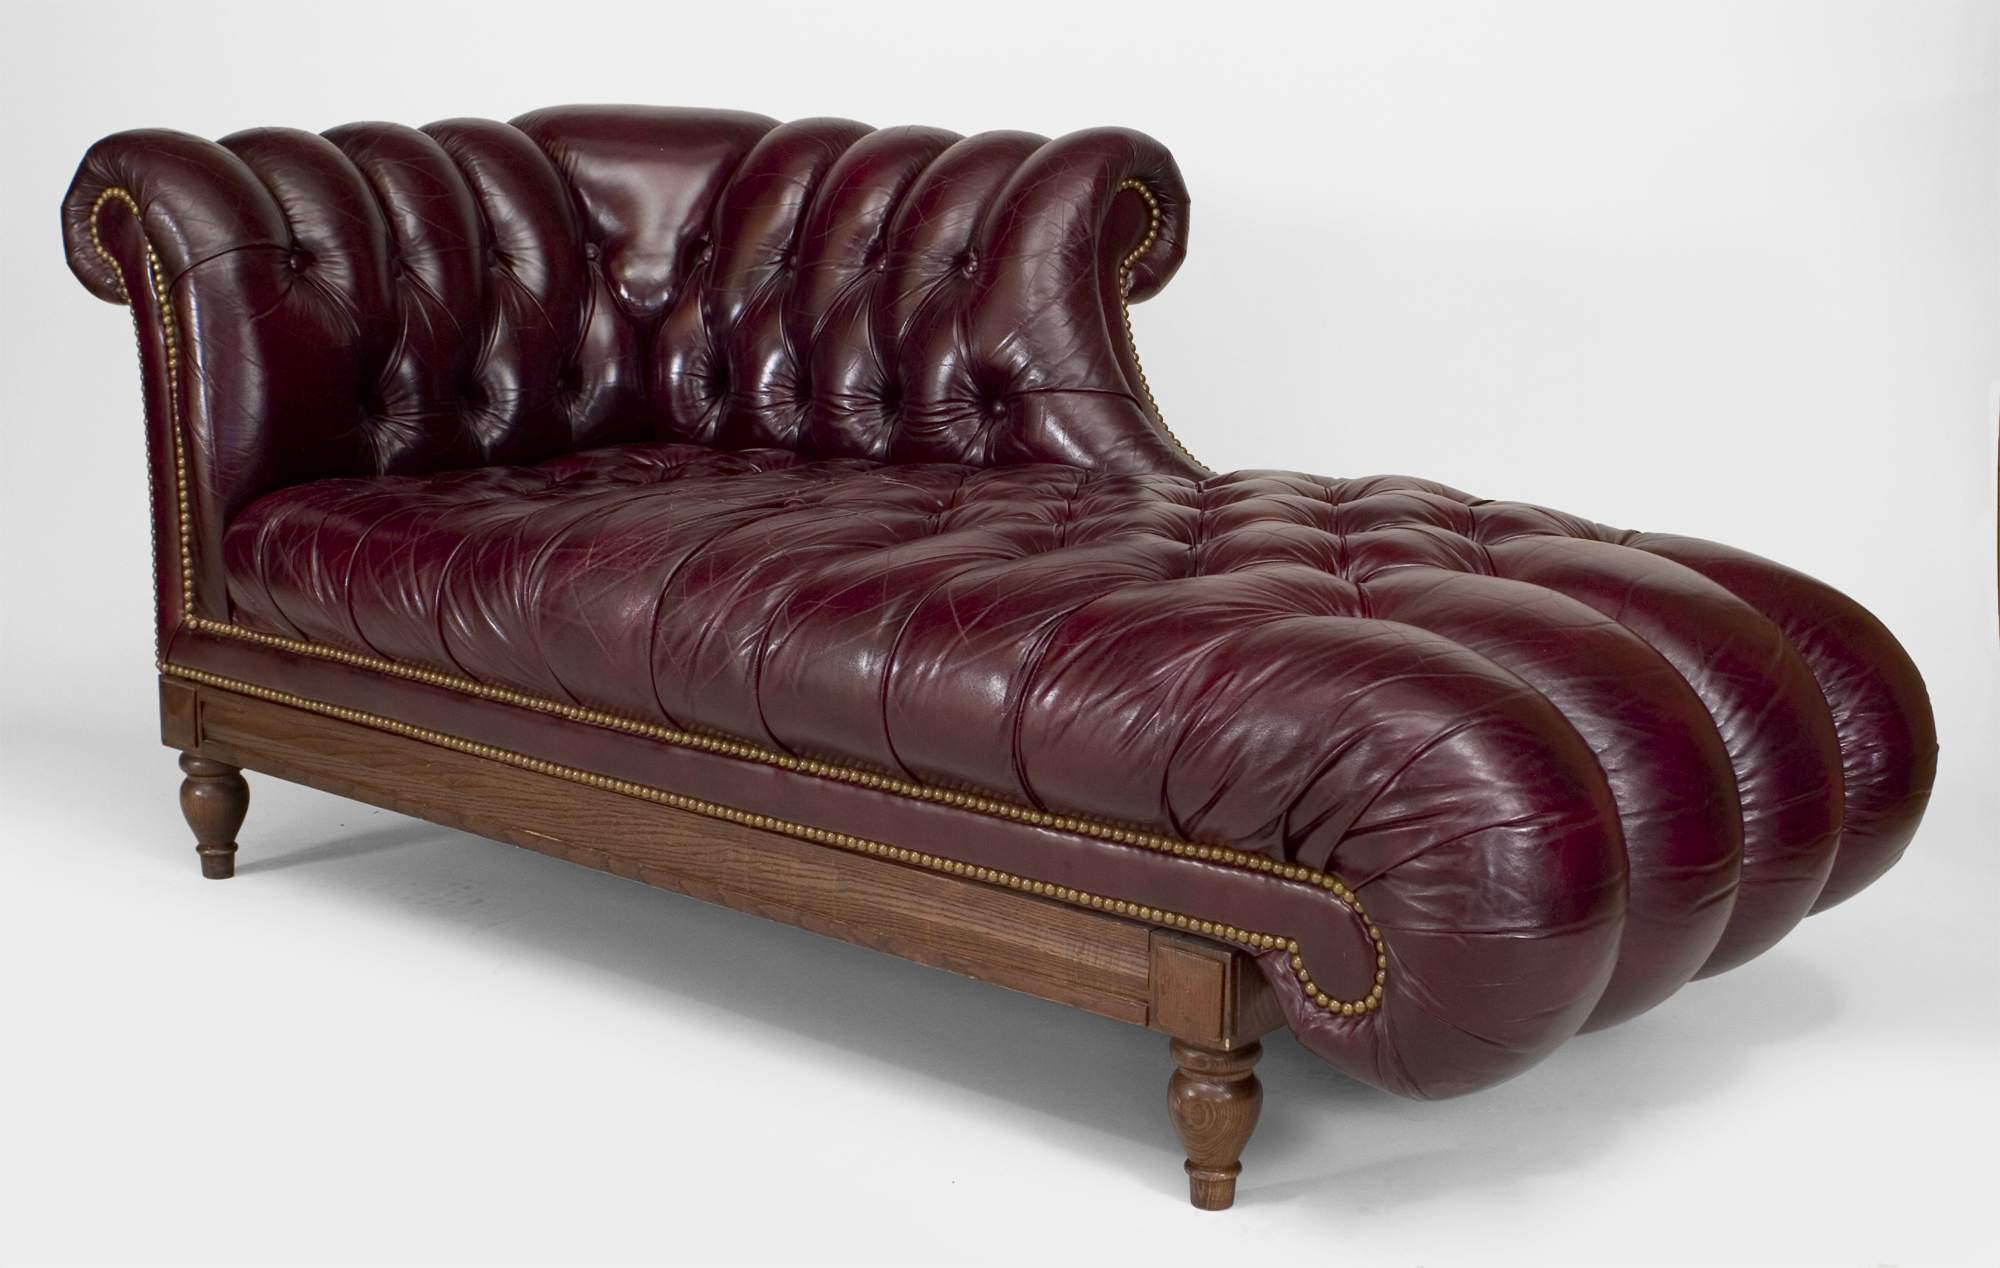 tufted leather sofa with rolled arms fabric chesterfield beds 15 photos victorian sofas ideas